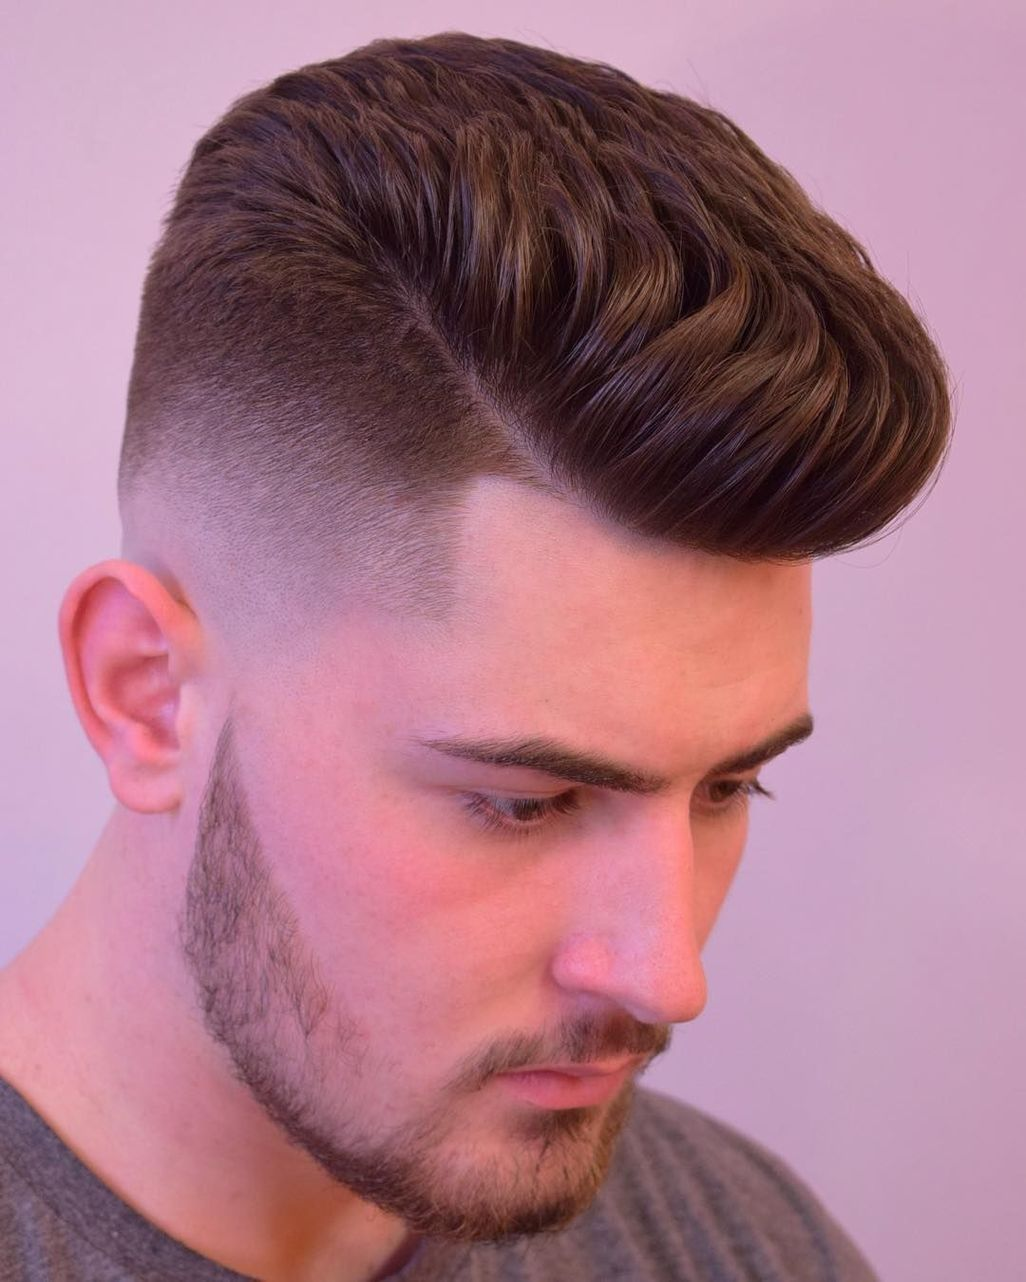 Haircut for men hairline awesome  adorable hairstyles for men with receding hairlines more